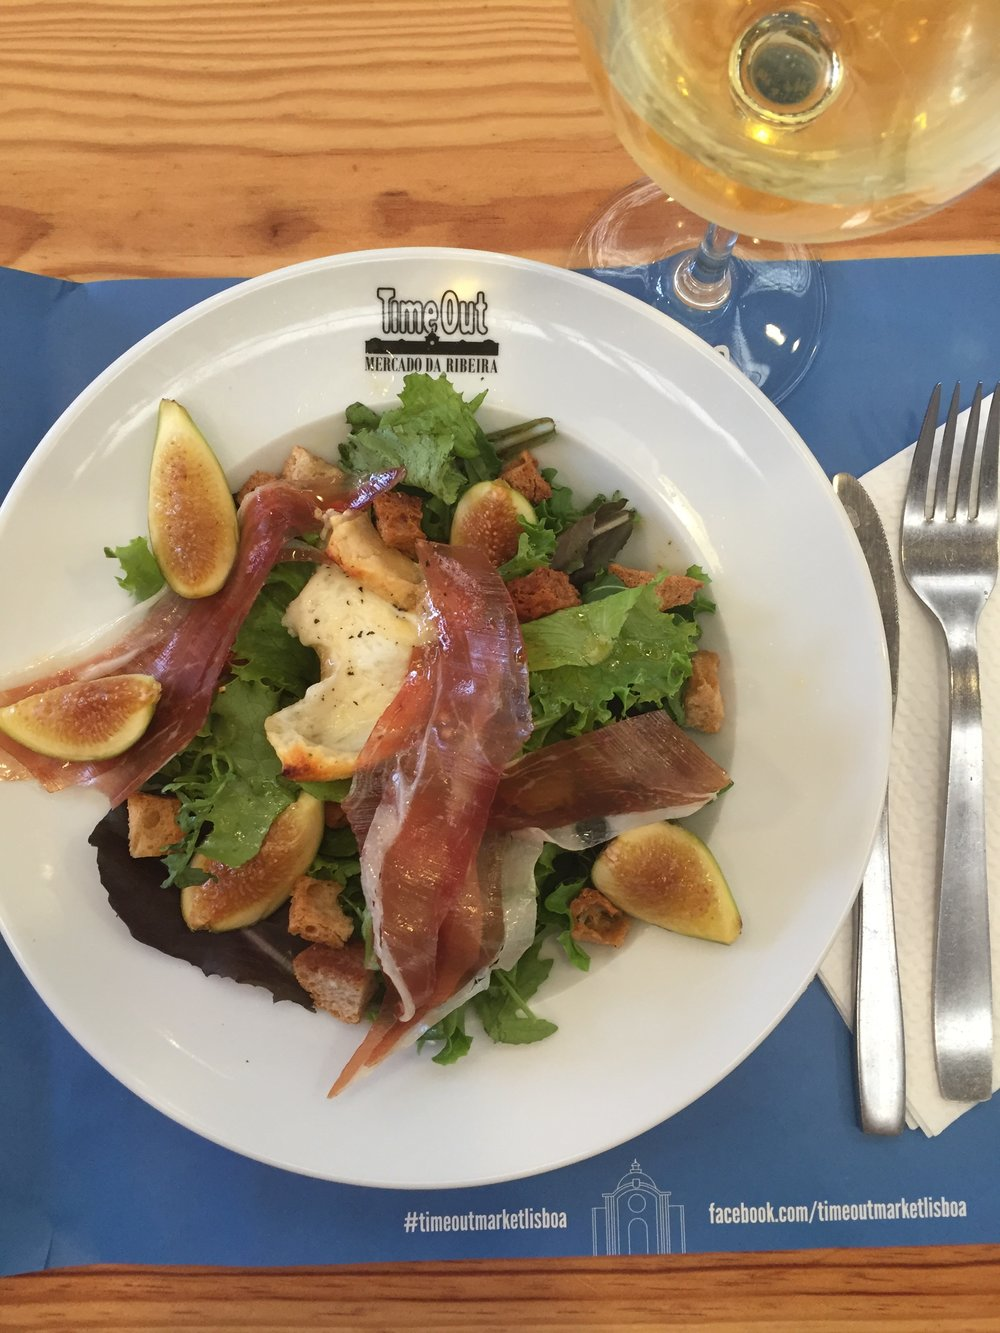 beautiful salad with figs, goat cheese, and prosciutto